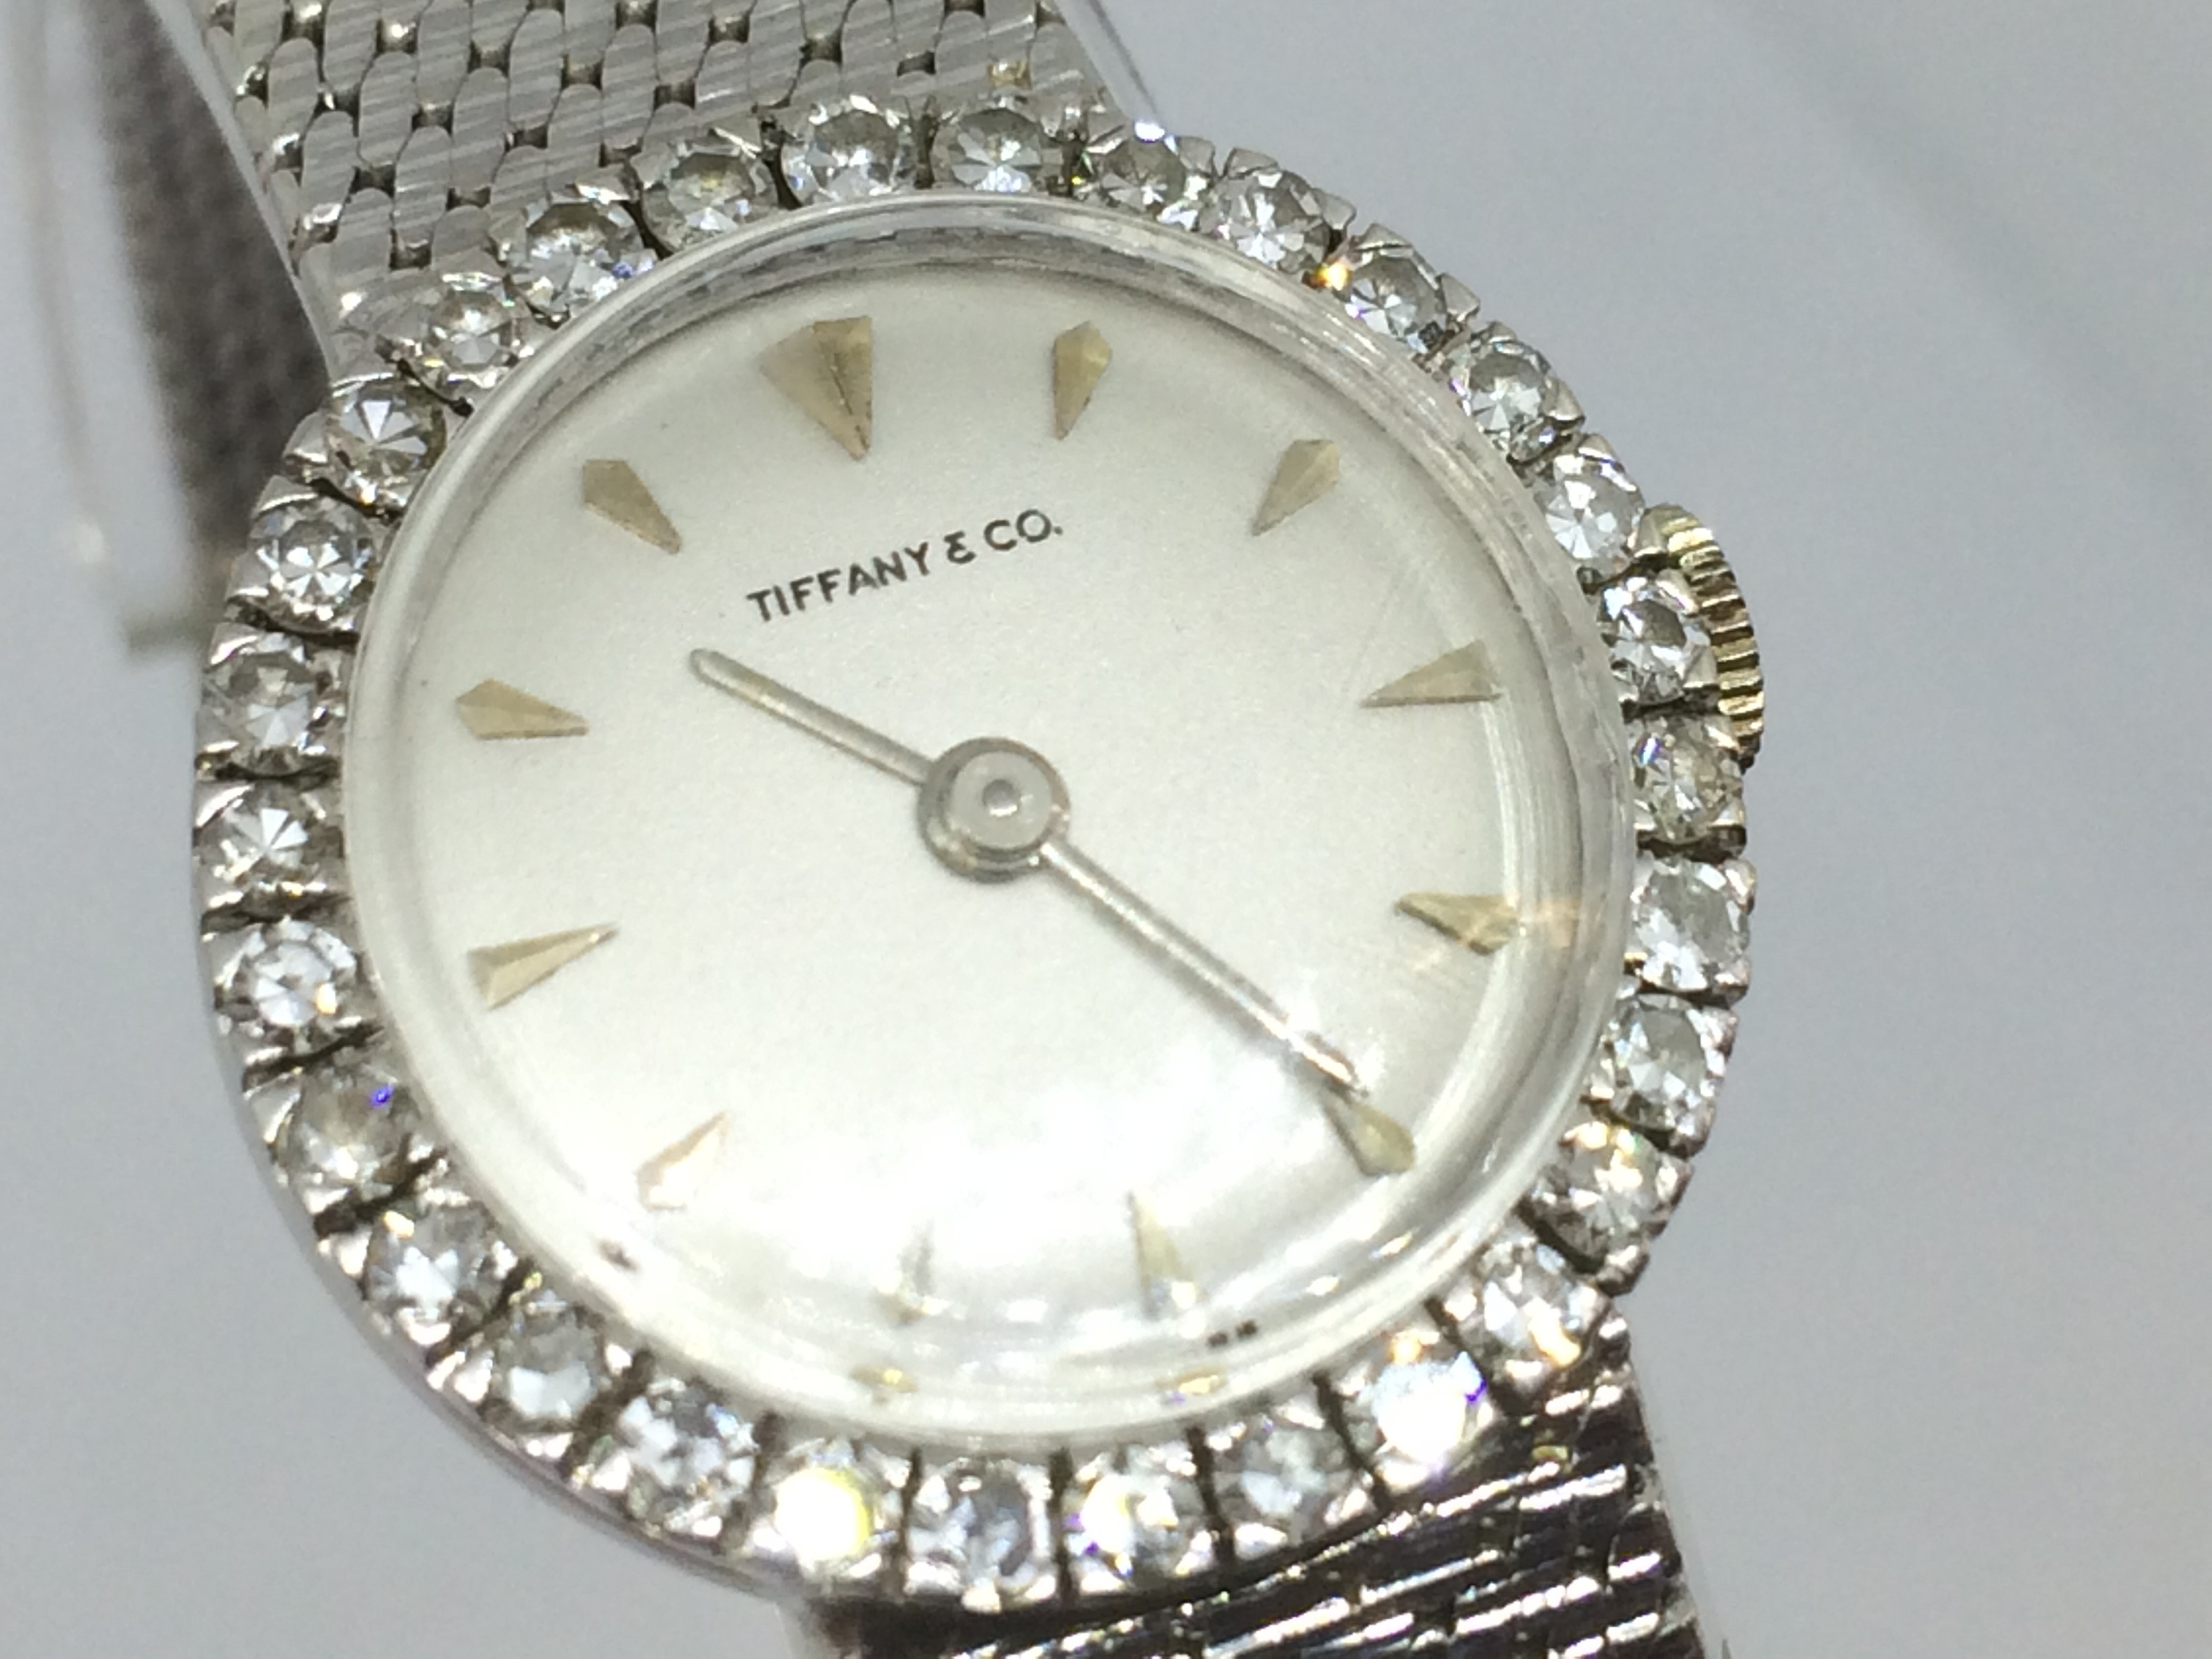 b5b92ba00474a Tiffany & Co Ladies 18ct white gold cocktail watch set with 1.50ct of  diamonds